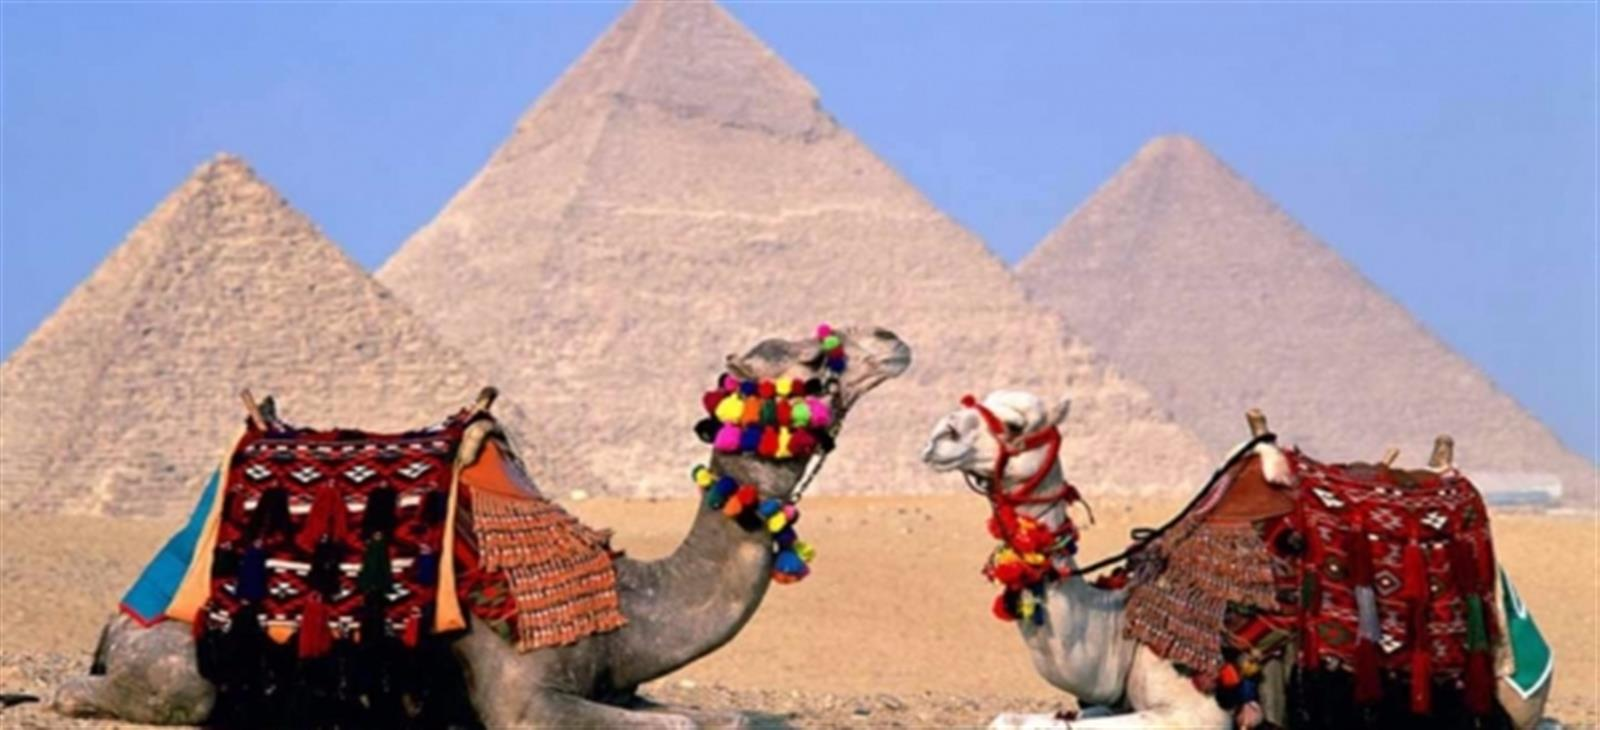 tours from luxor to cairo